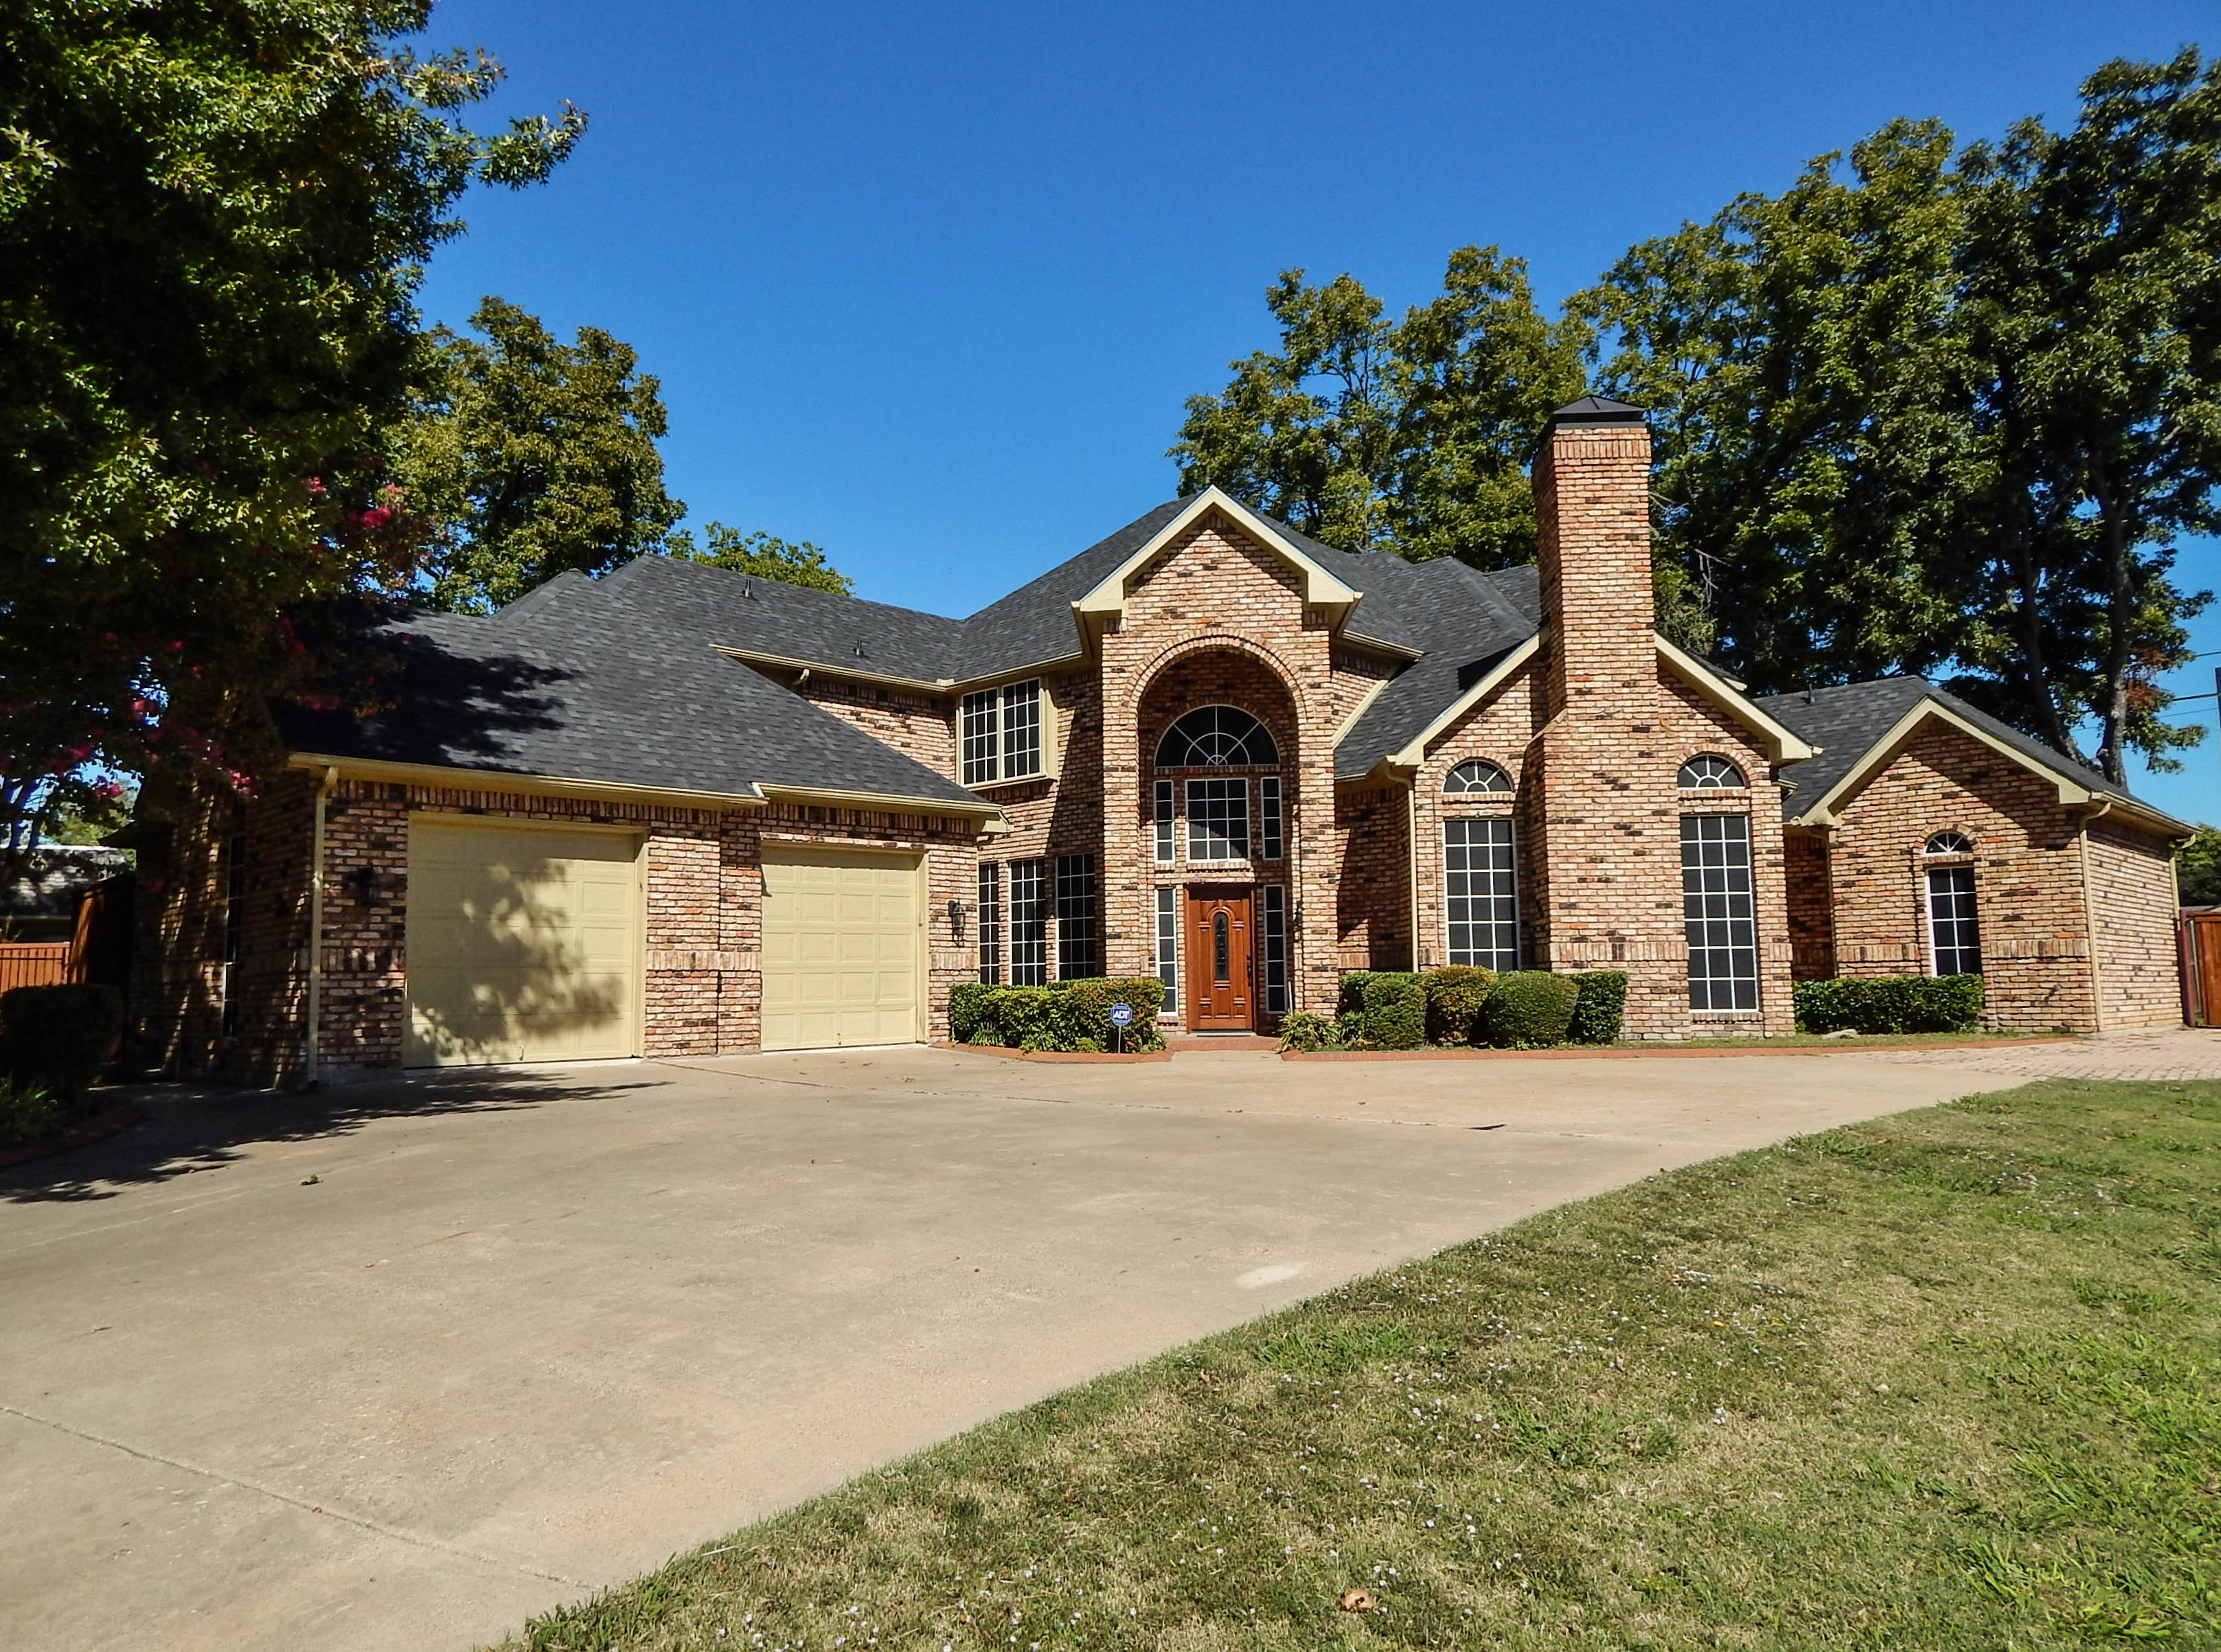 rowlett homes for sale rowlett tx real estate rowlett texas homes for sale rowlett tx homes